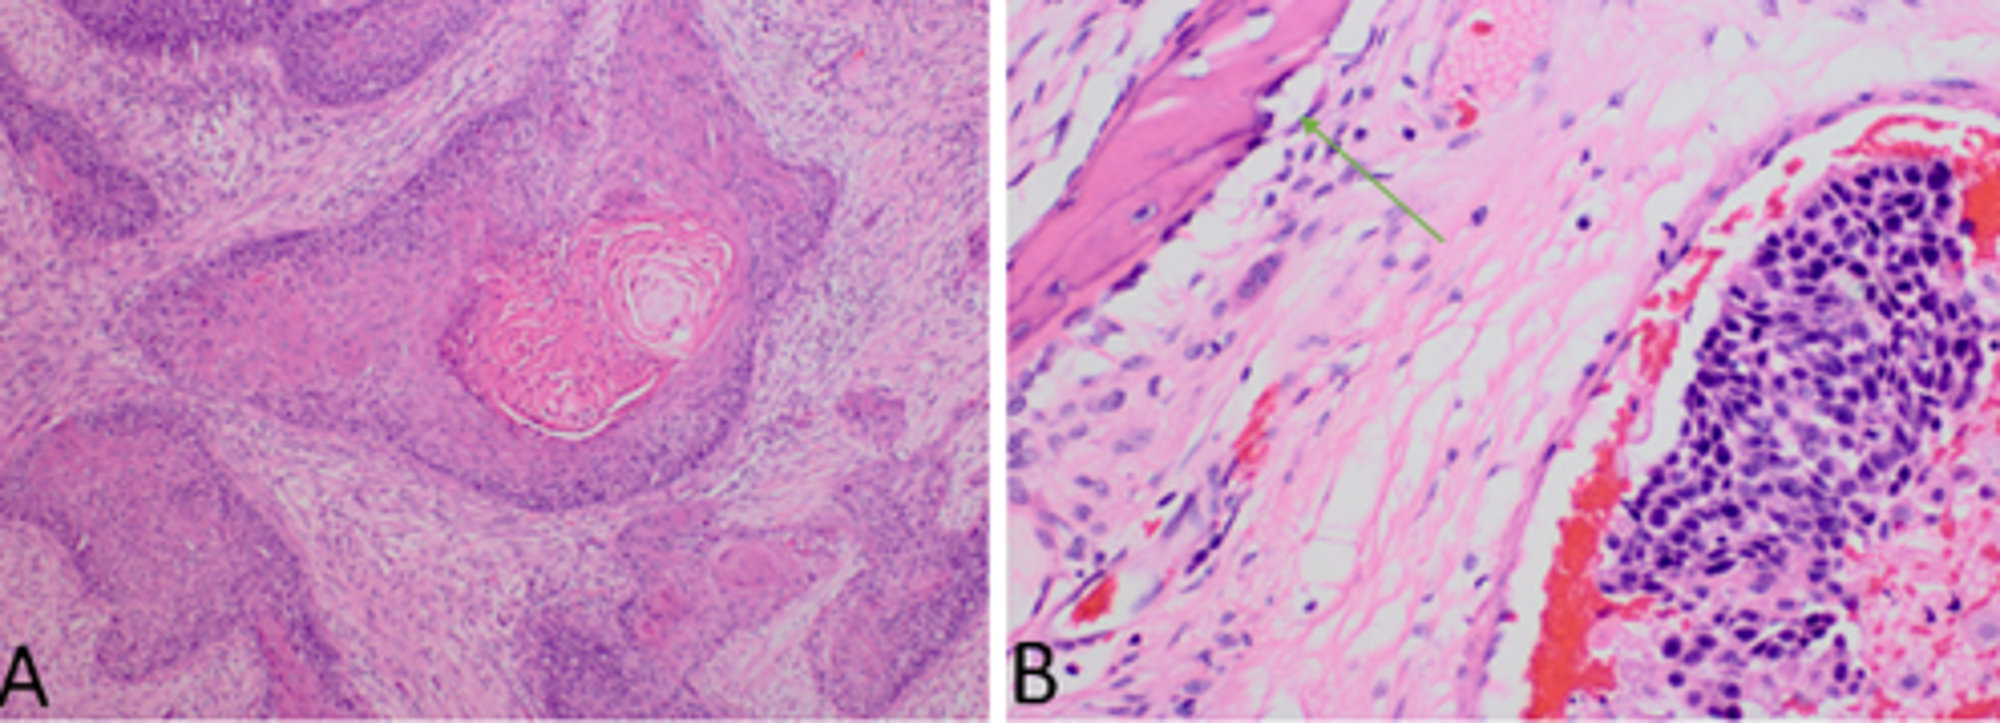 squamous cell carcinoma and papilloma rectosigmoid cancer with liver metastases